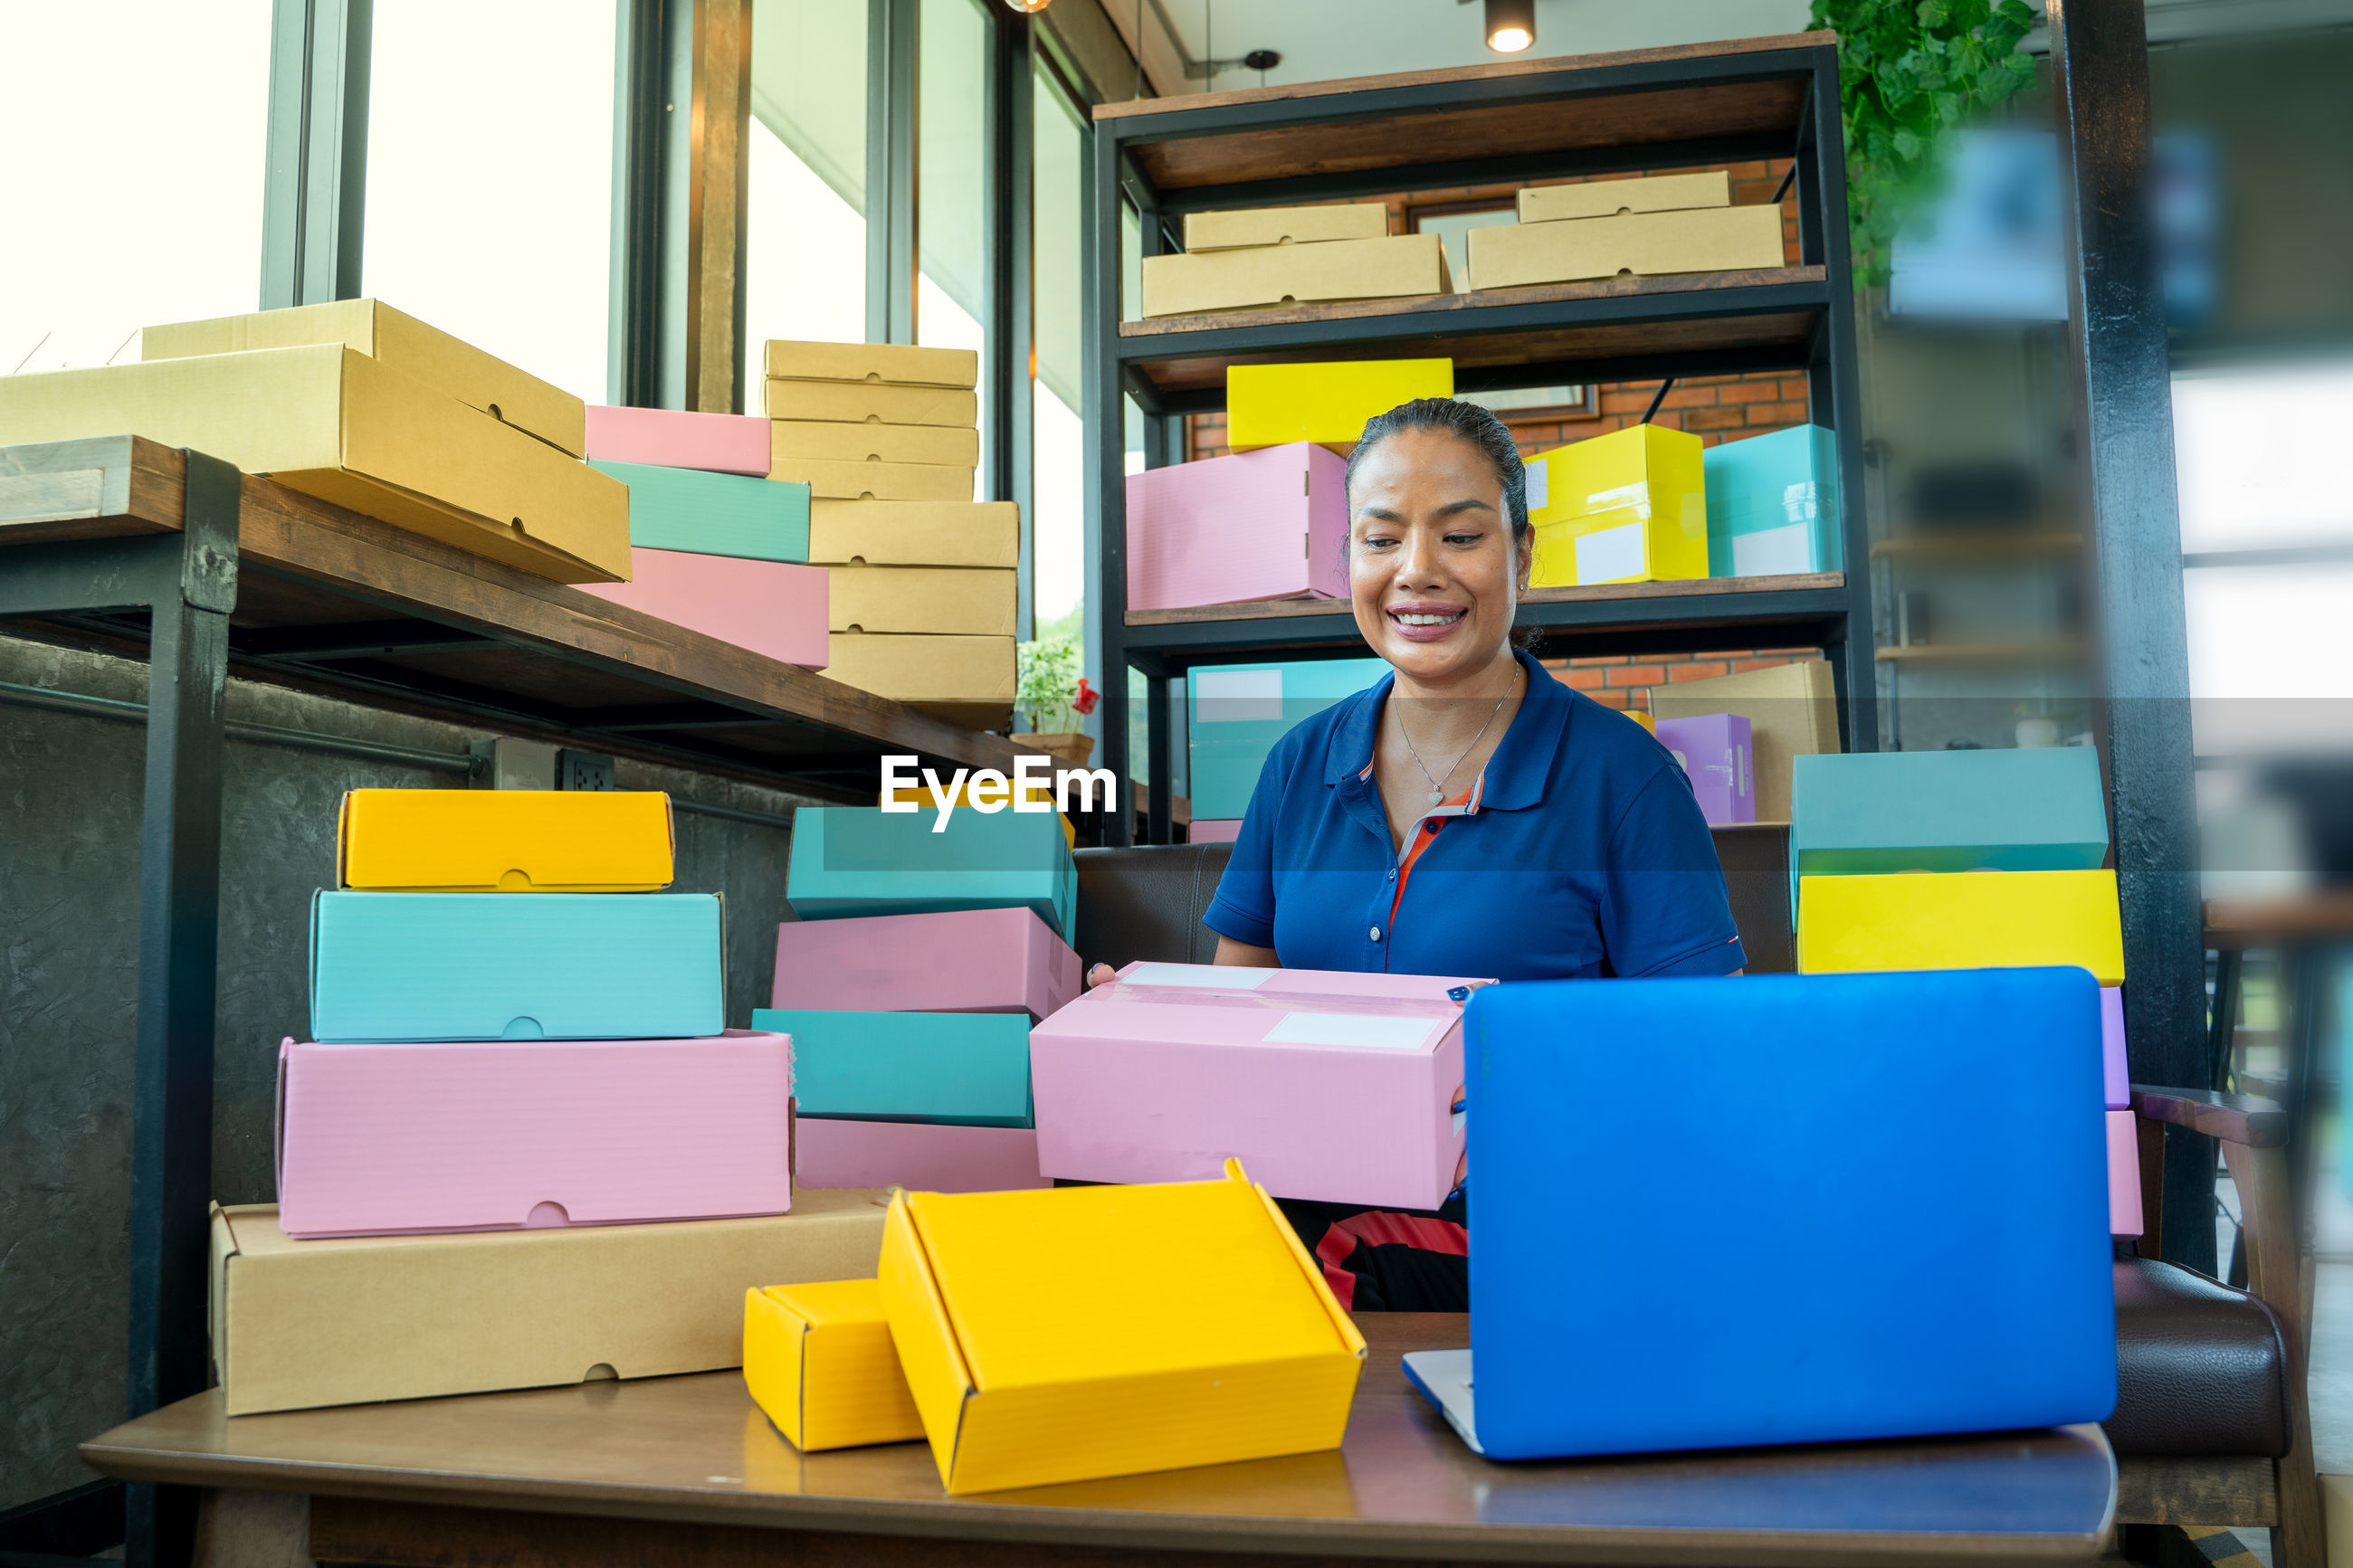 PORTRAIT OF A SMILING YOUNG MAN SITTING ON STACK OF COLORFUL